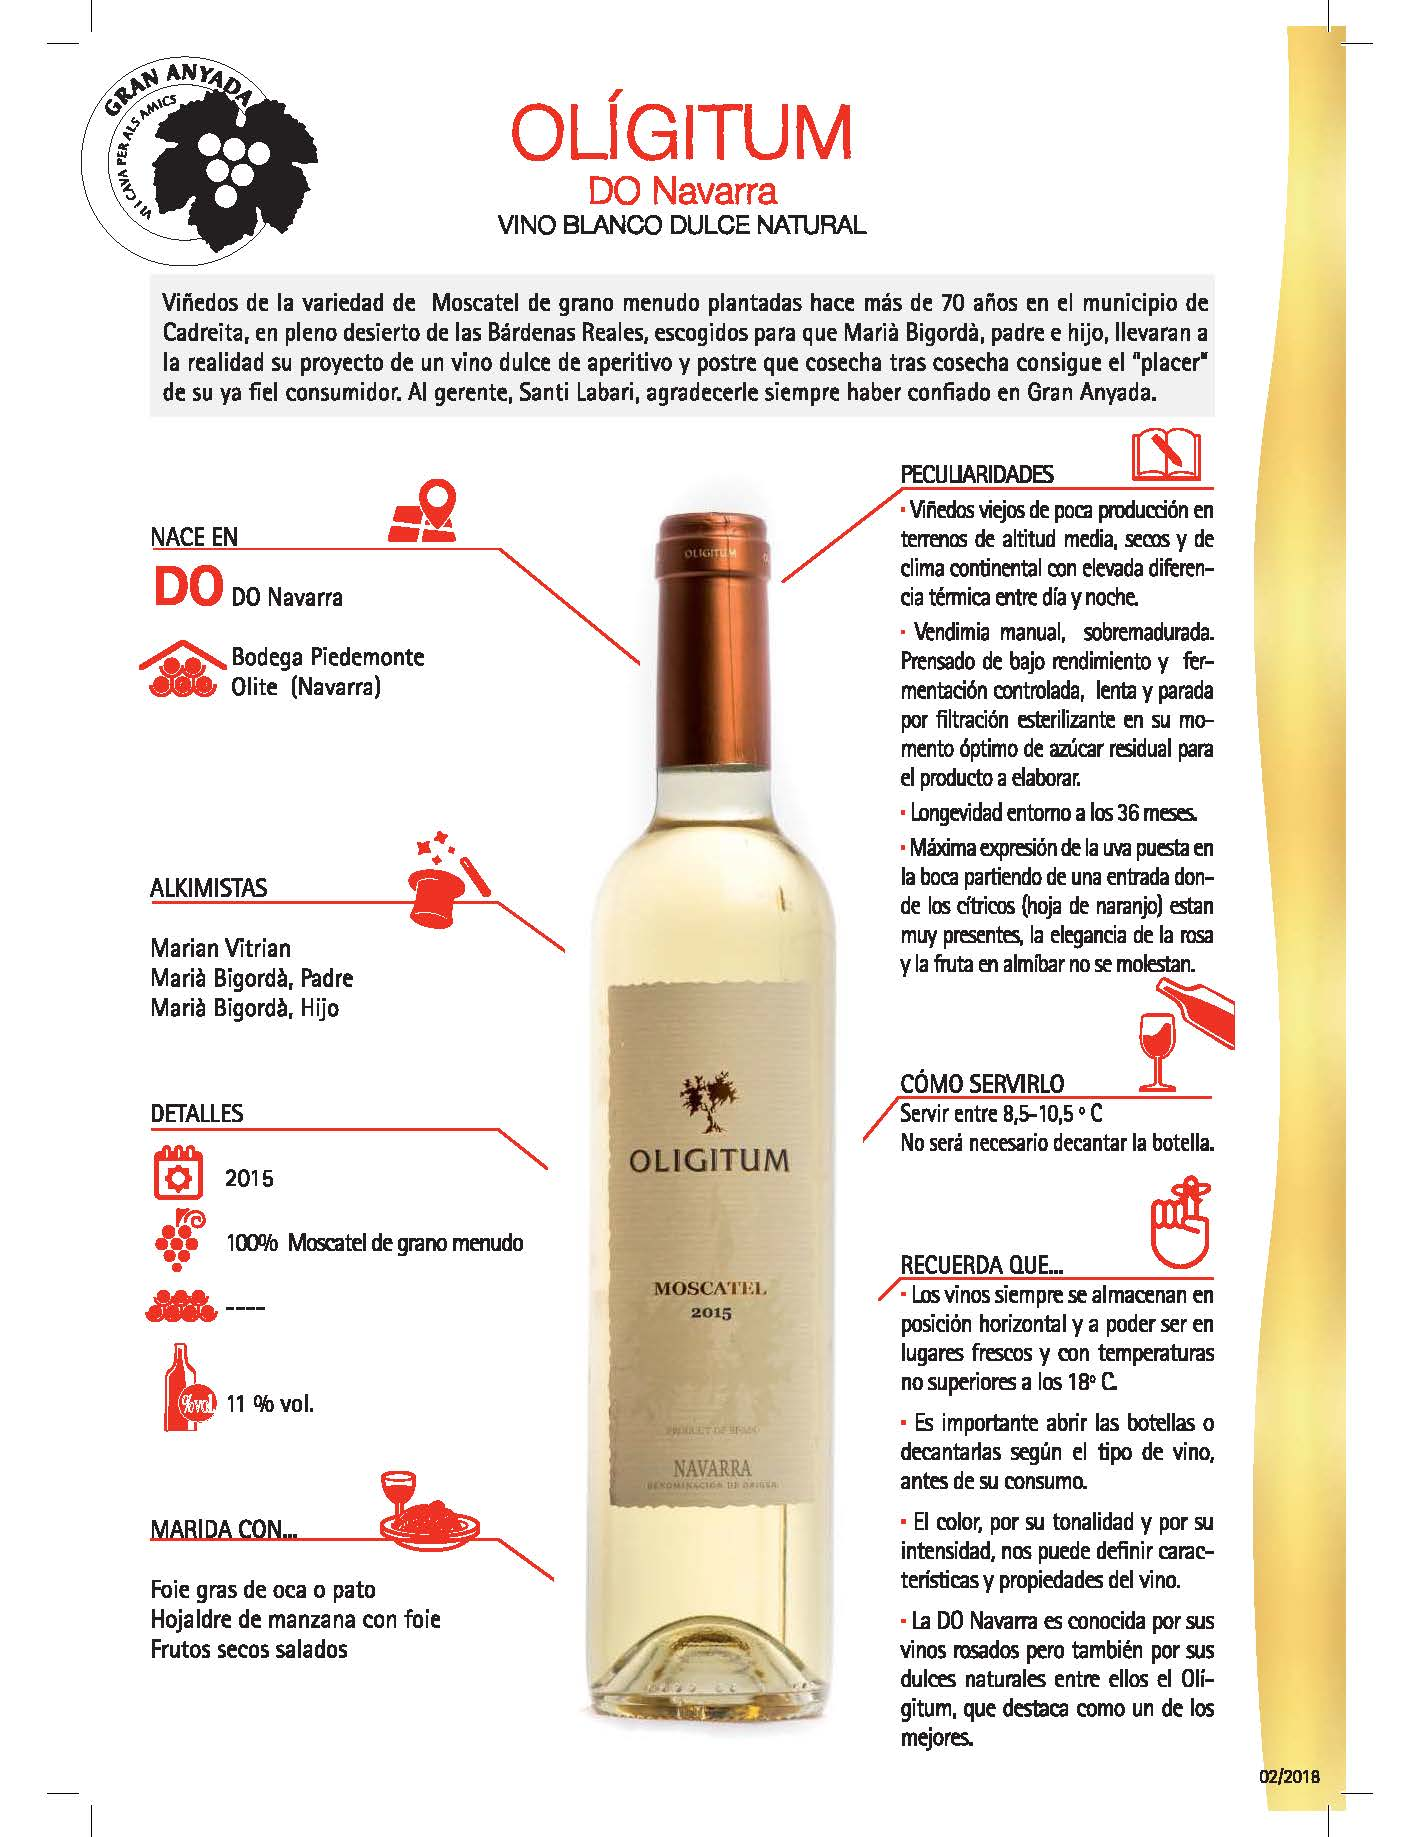 OLIGITUM DO Navarra, vino blanco dulce natural